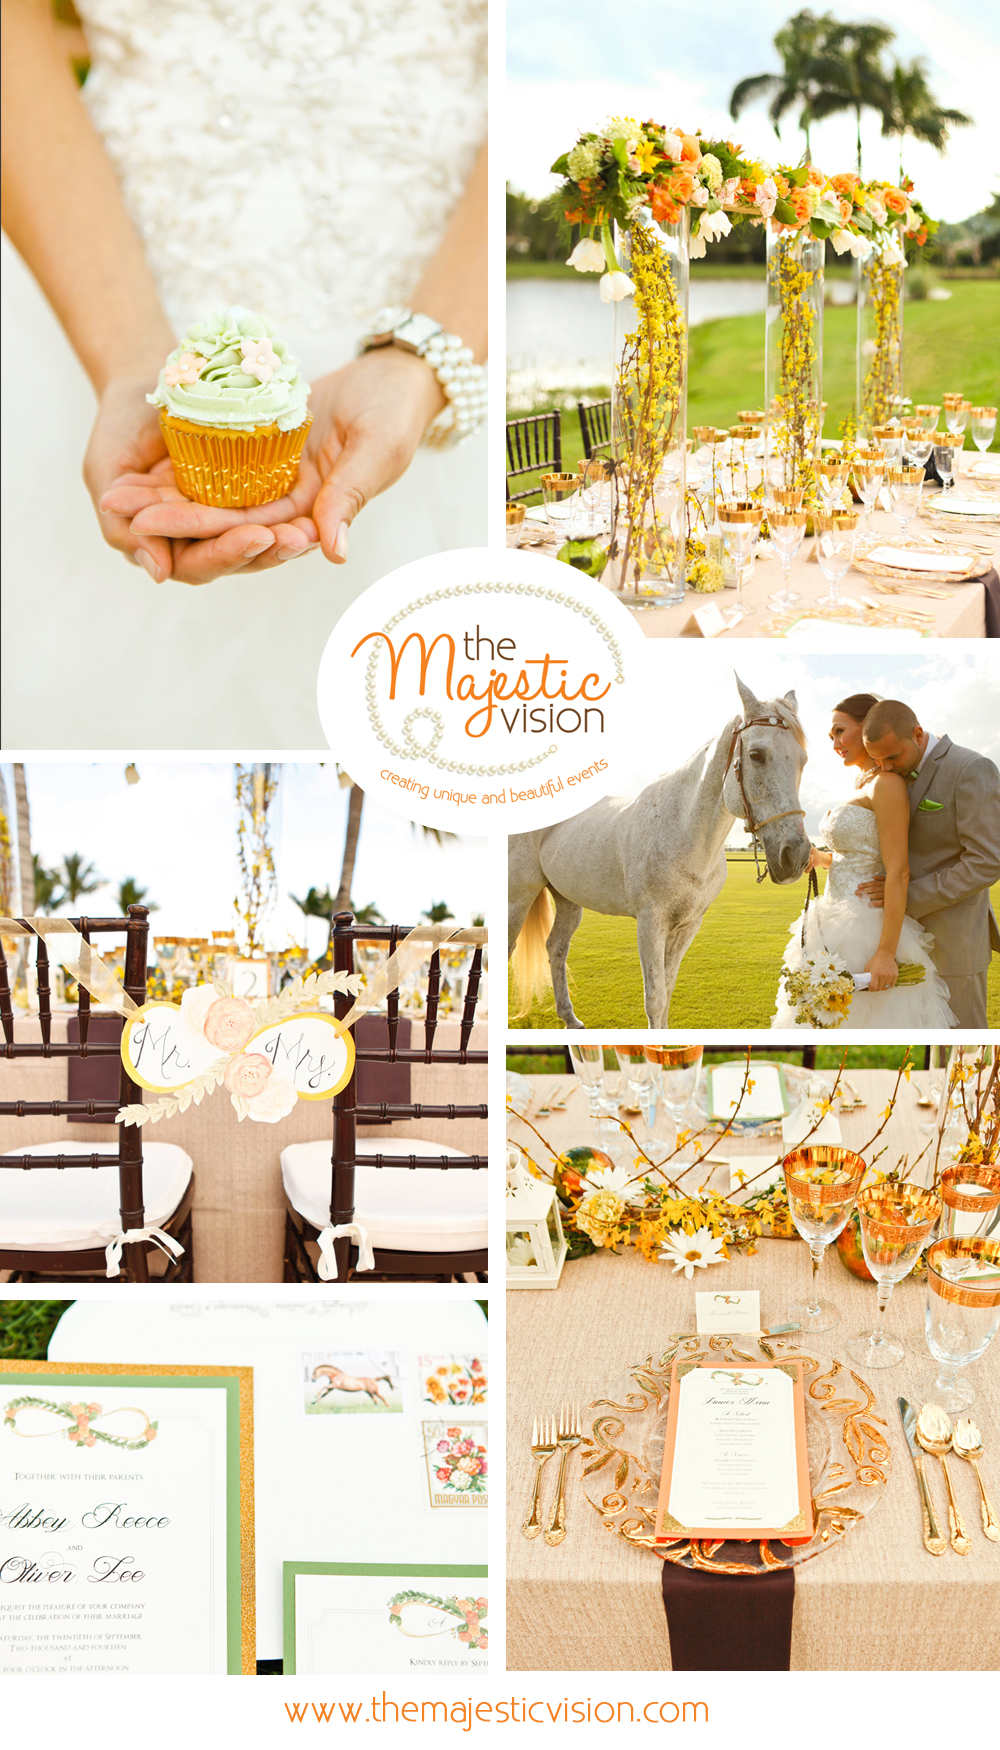 Elegant Orange and Gold Polo Club Wedding | The Majestic Vision Wedding Planning | International Polo Club in Palm Beach, FL | www.themajesticvision.com | Krystal Zaskey Photography